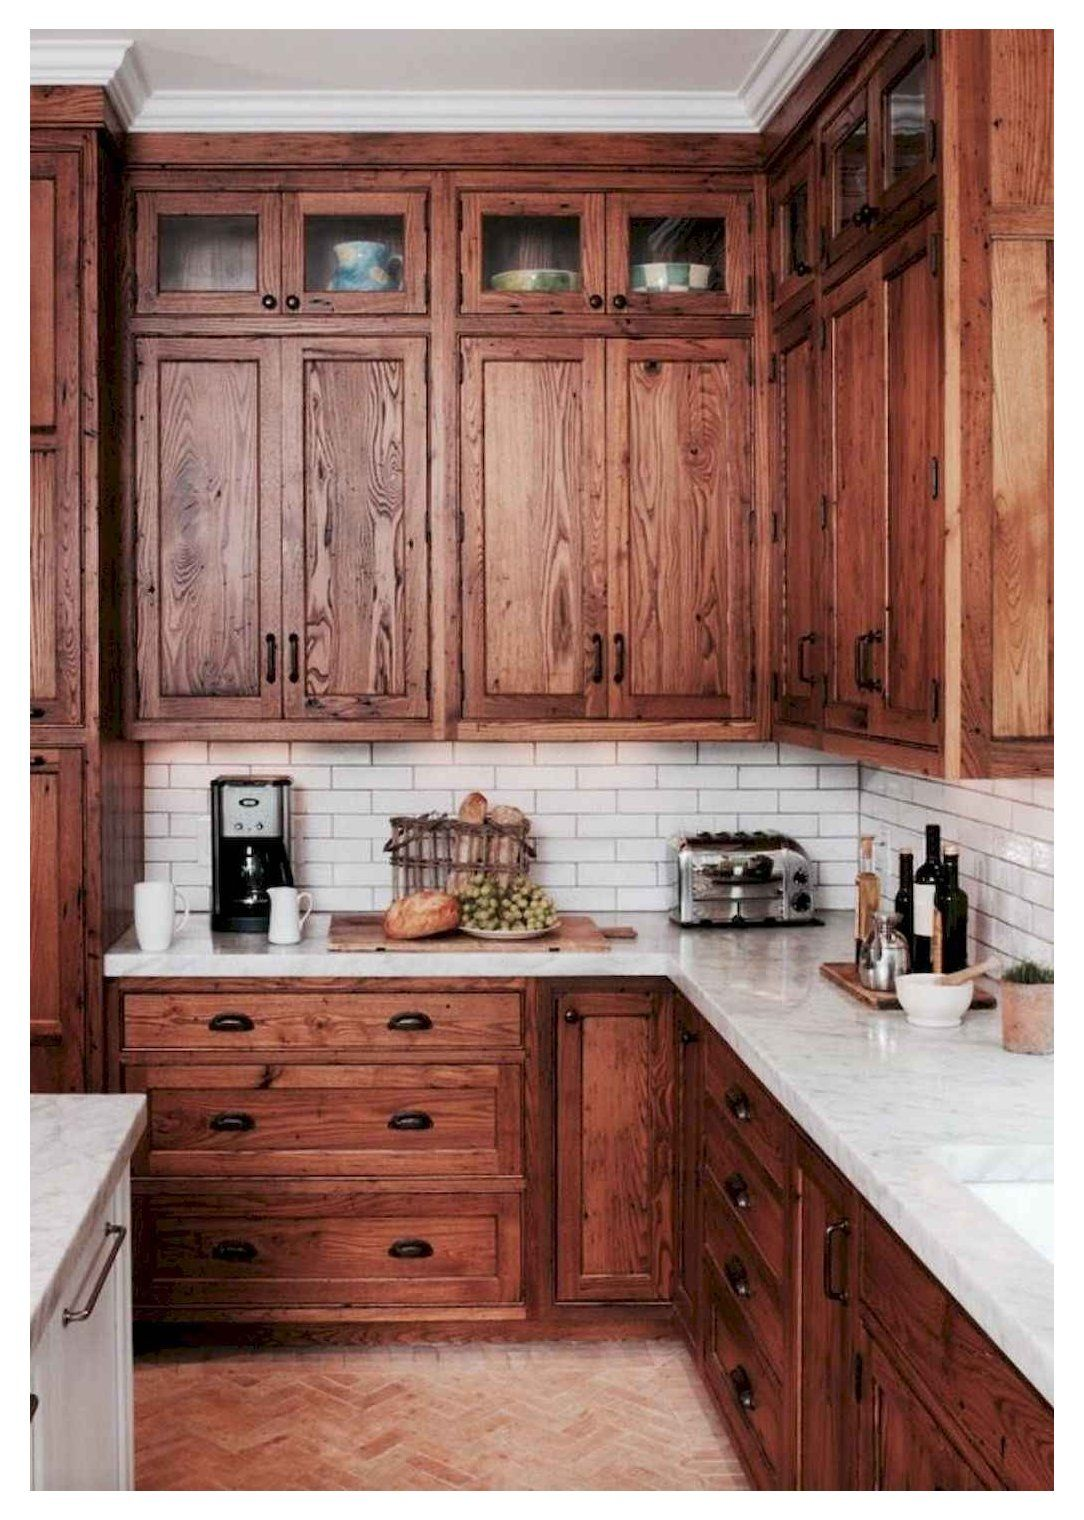 65 Brilliant Kitchen Cabinet Organization And Tips Ideas Ads Link Txt A Cluttered Kitchen Can Be Downrig In 2020 Kitchen Cabinets Decor Timeless Kitchen Rustic Kitchen